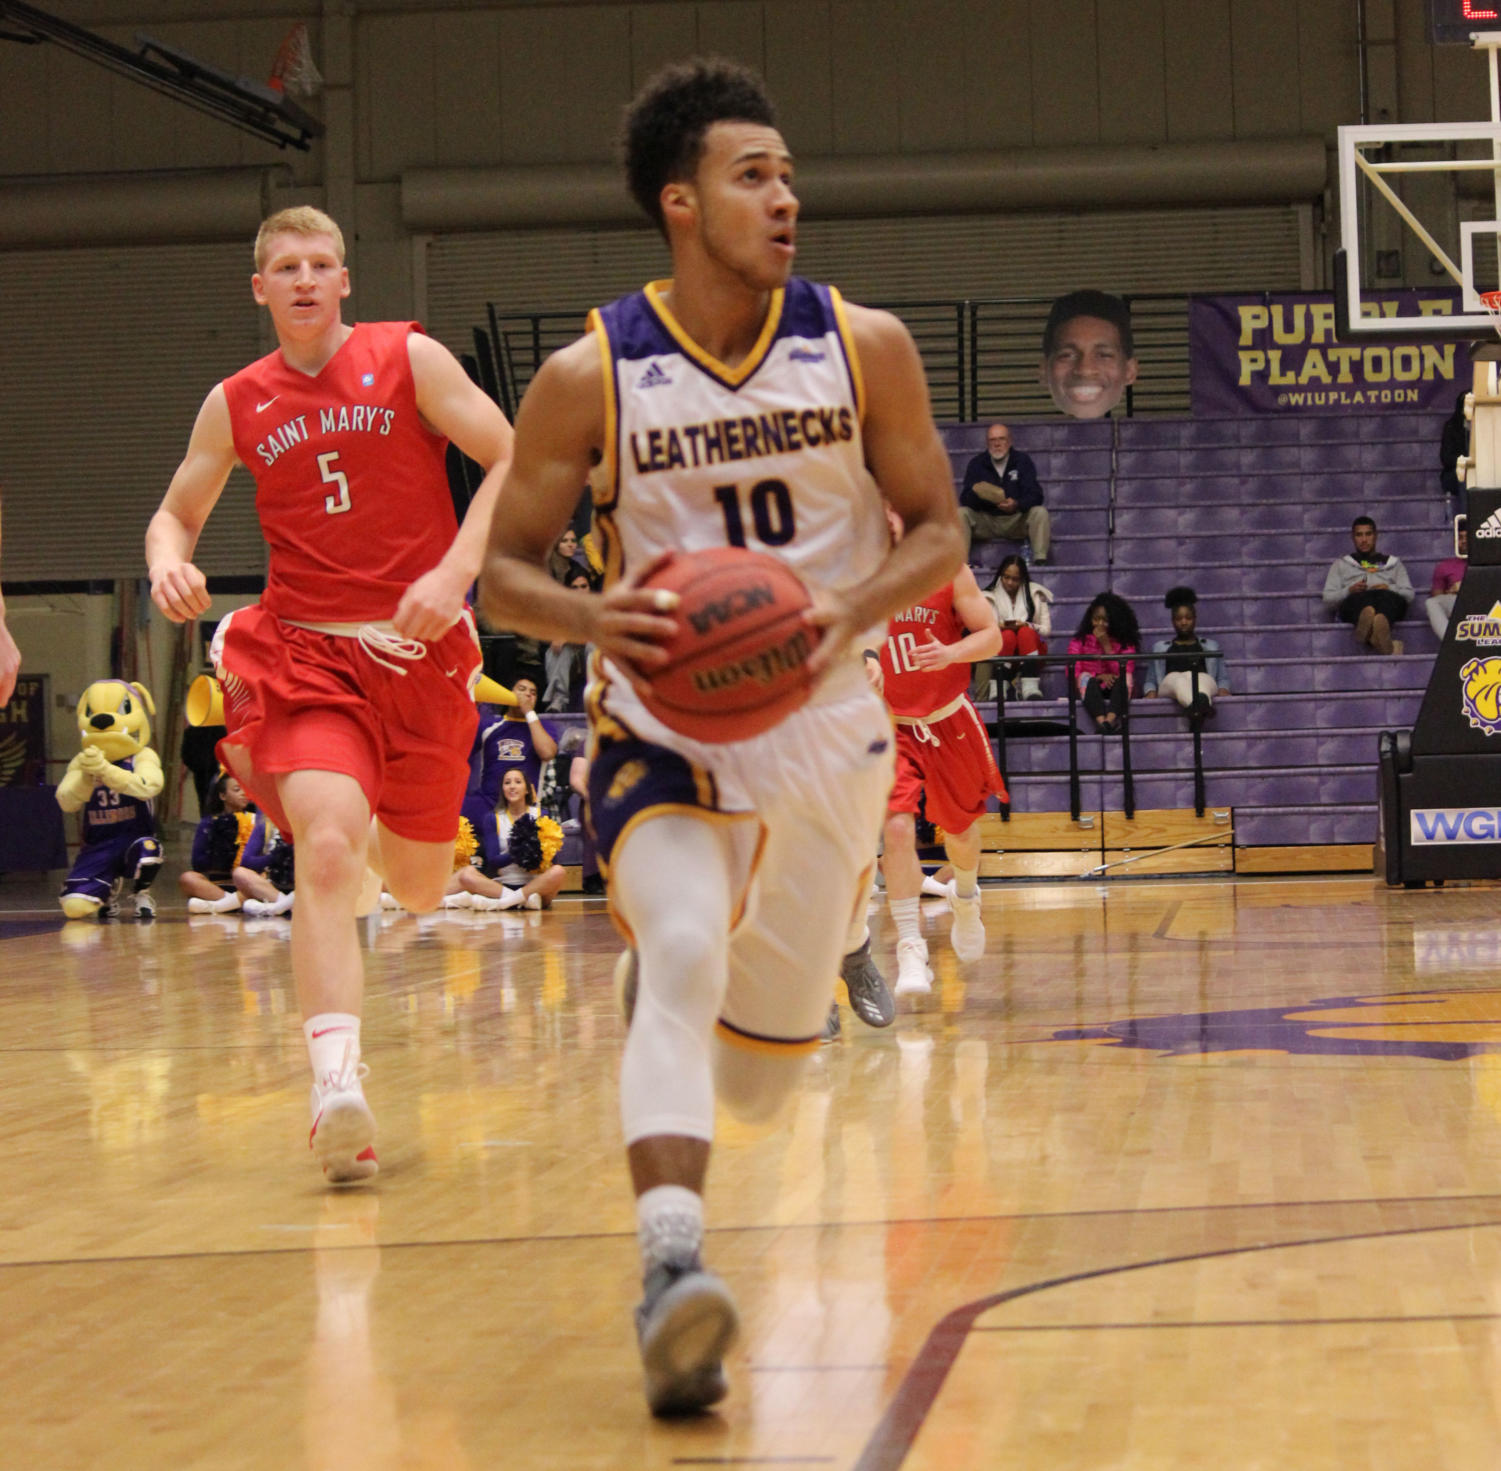 Kobe Webster races down the court on a fast-break to help Western get a victory.